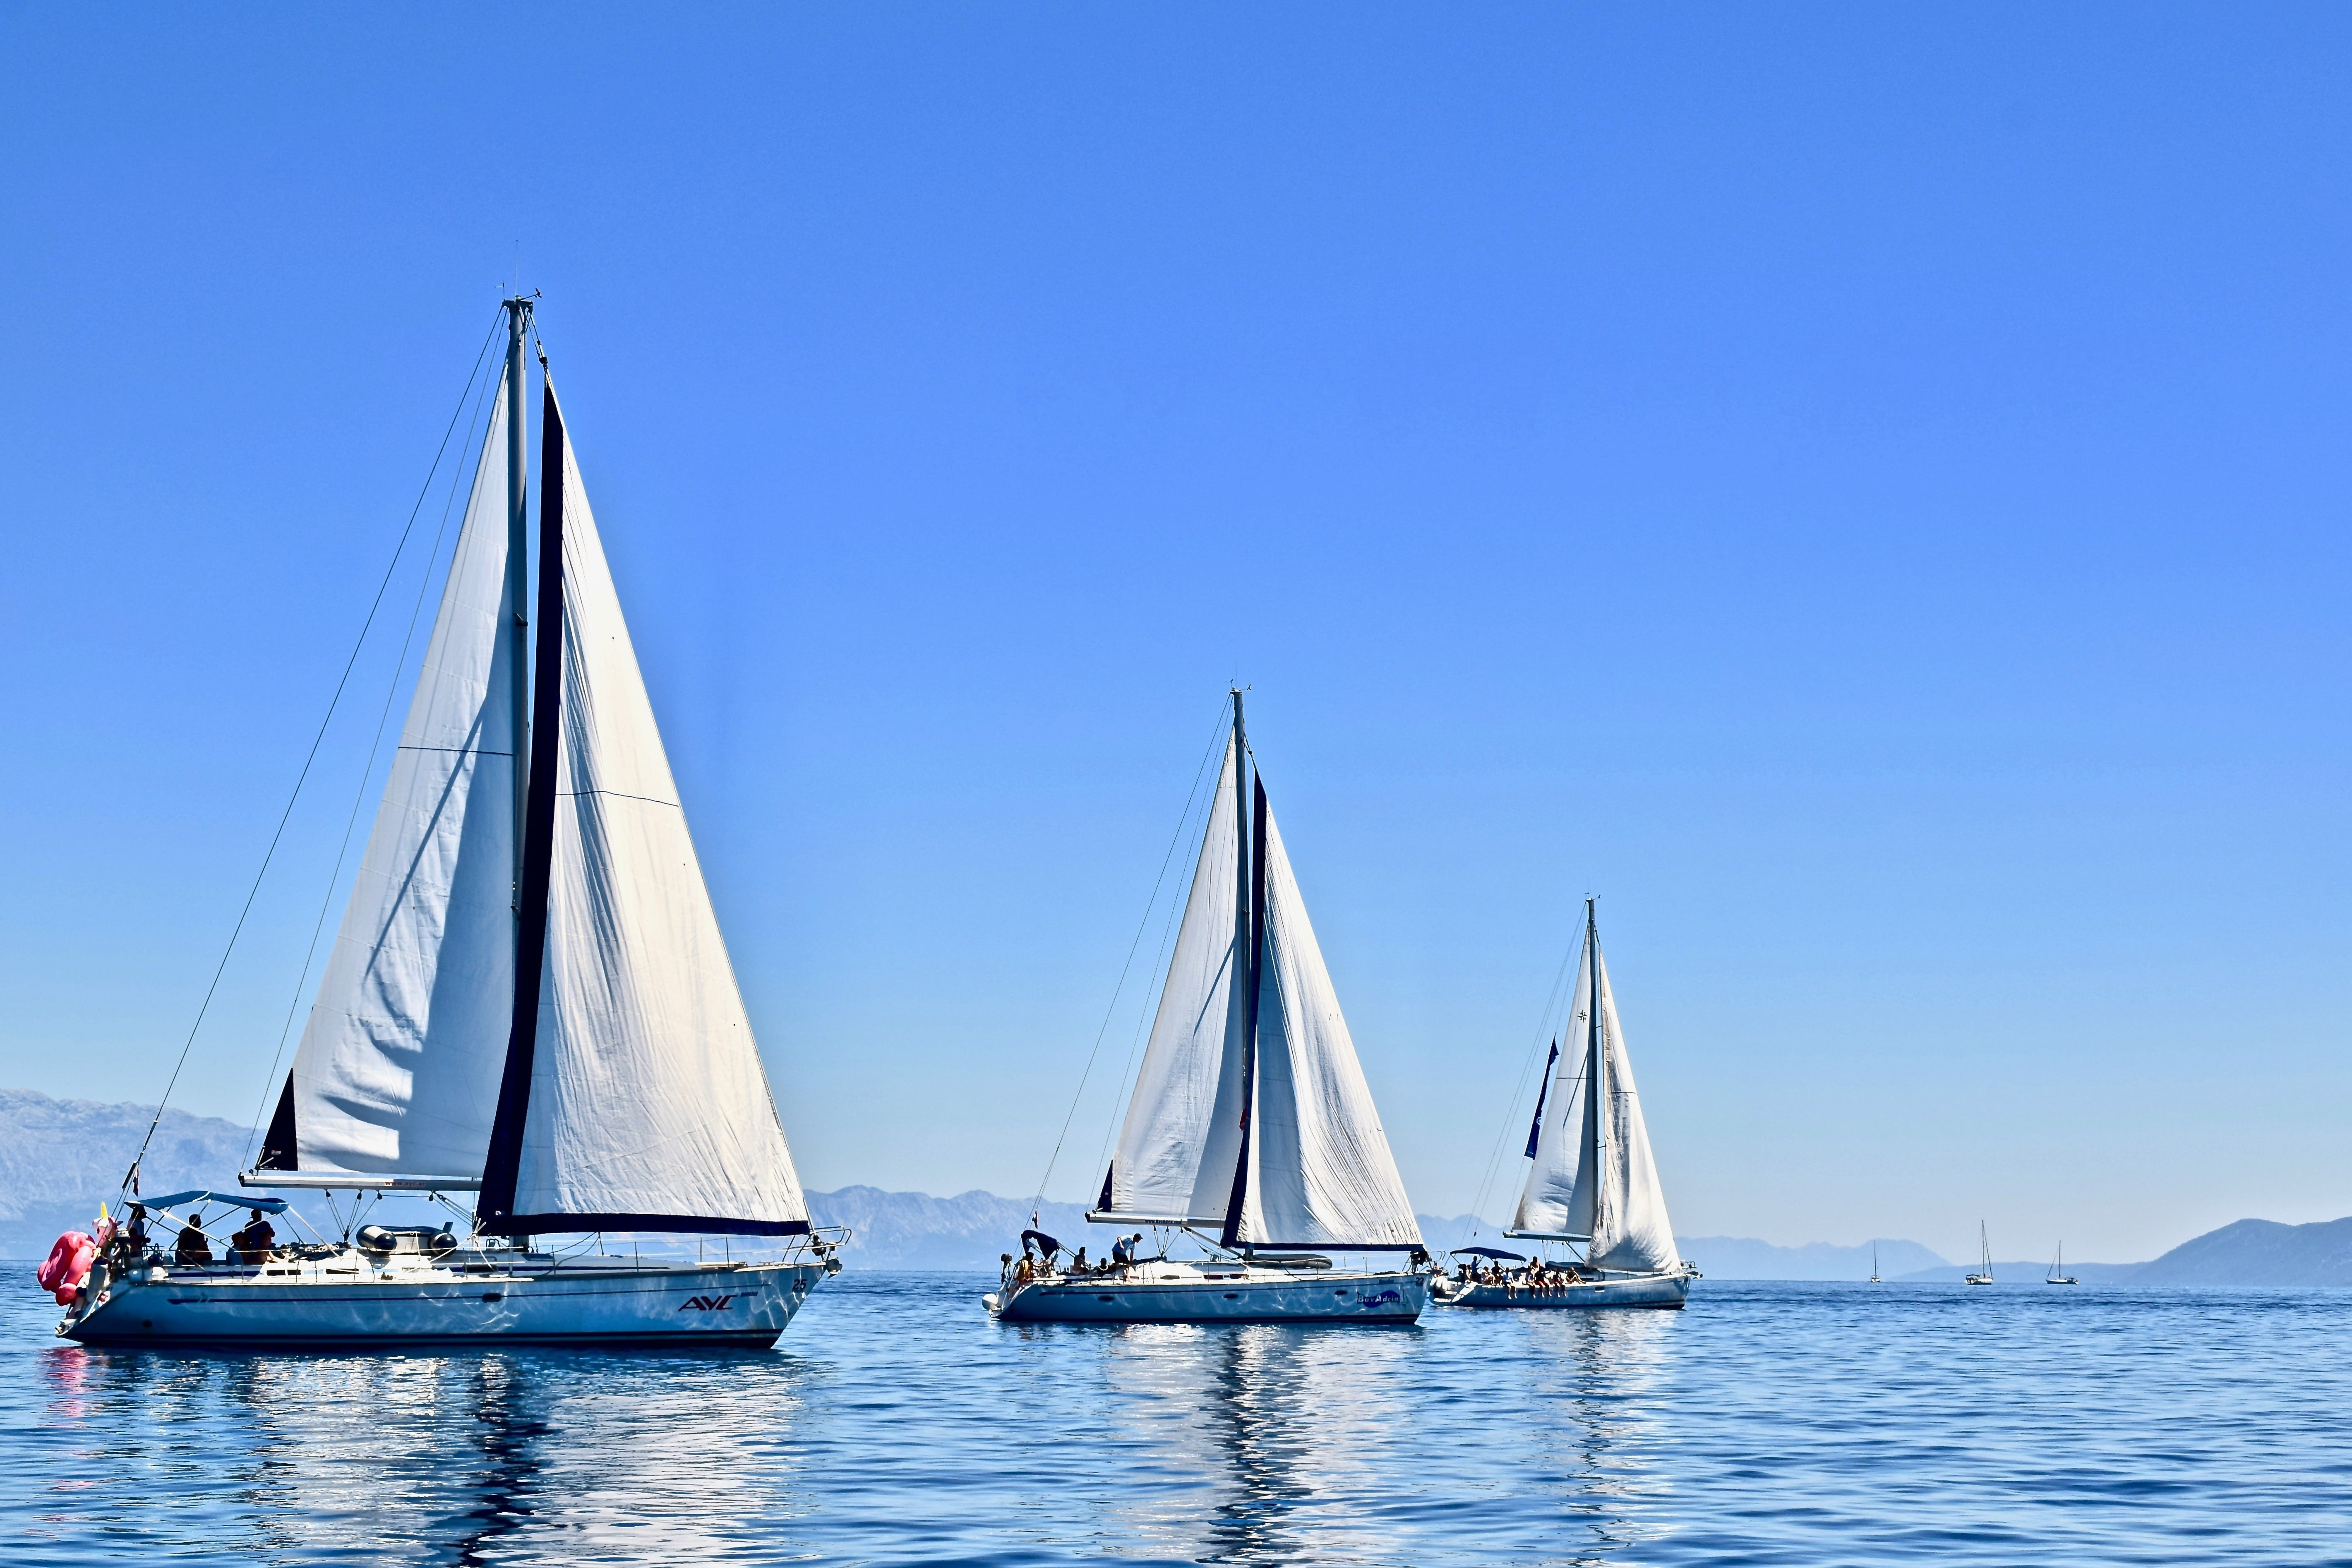 three sailboats on calm water